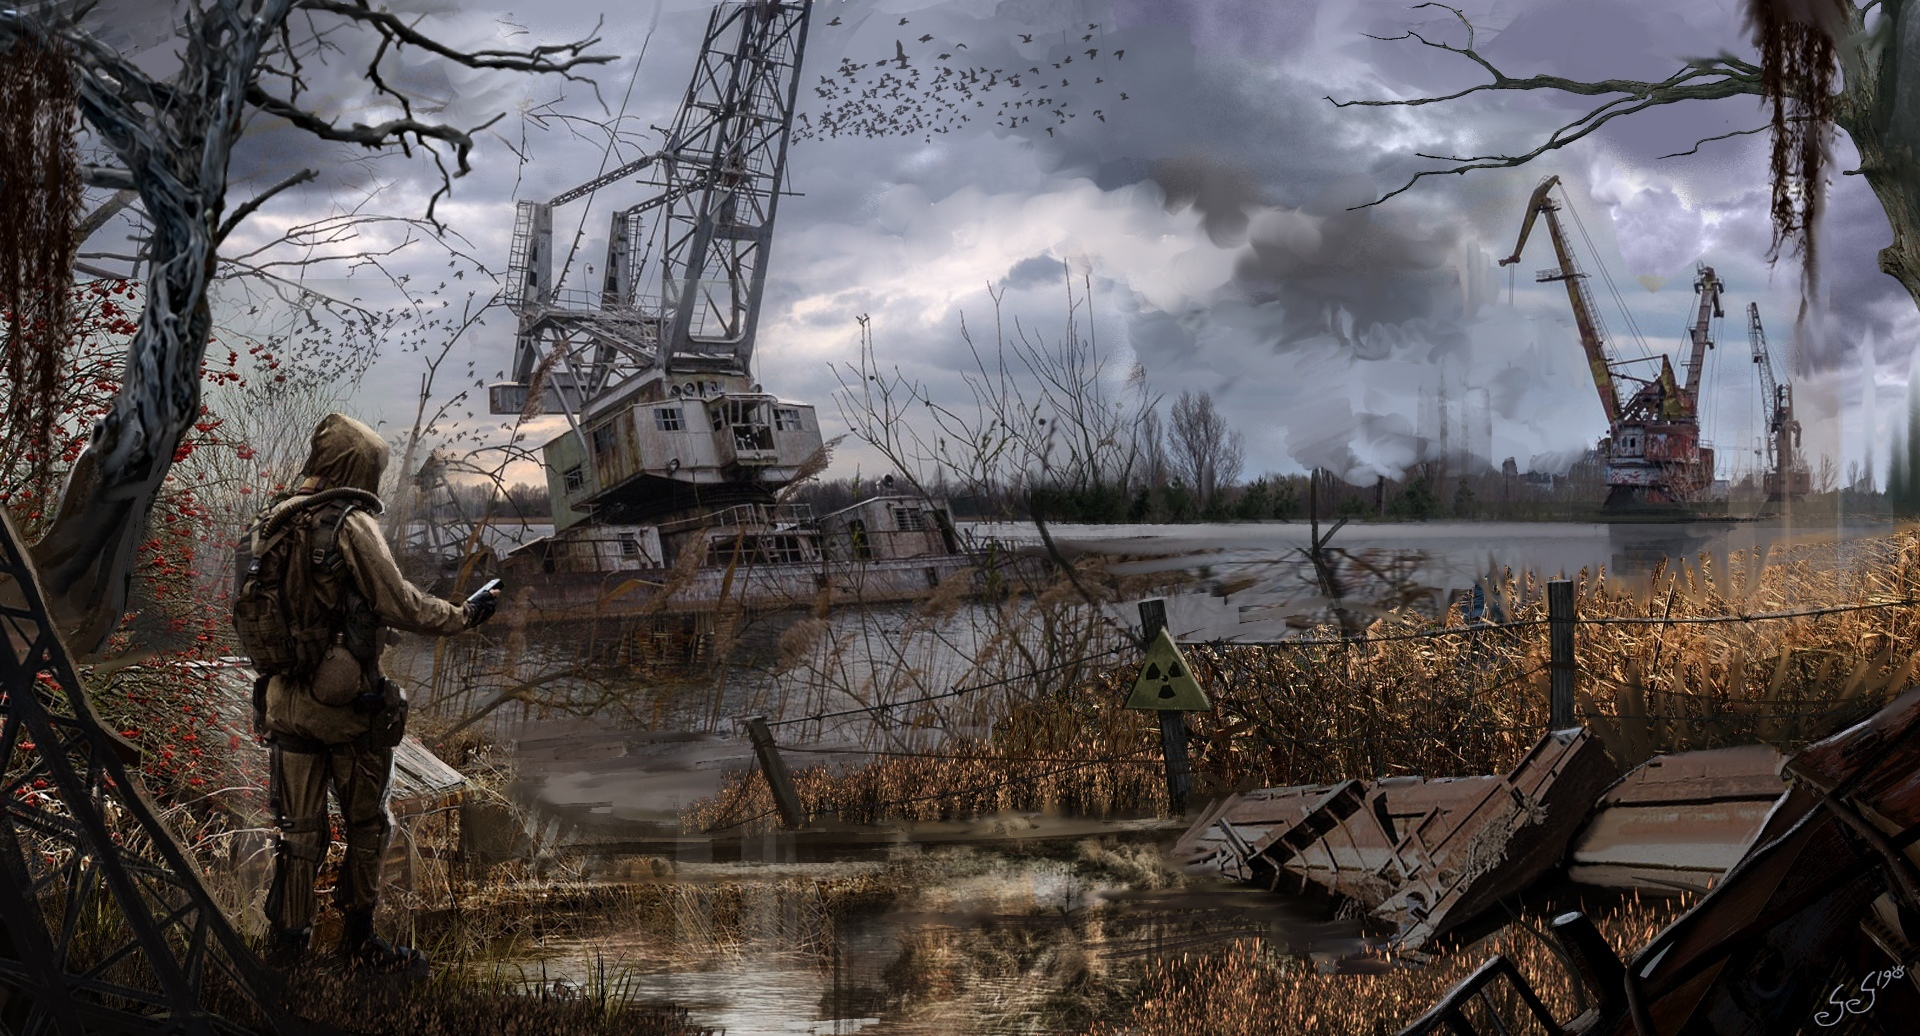 S.T.A.L.K.E.R.: Call of Pripyat - Живая Зона